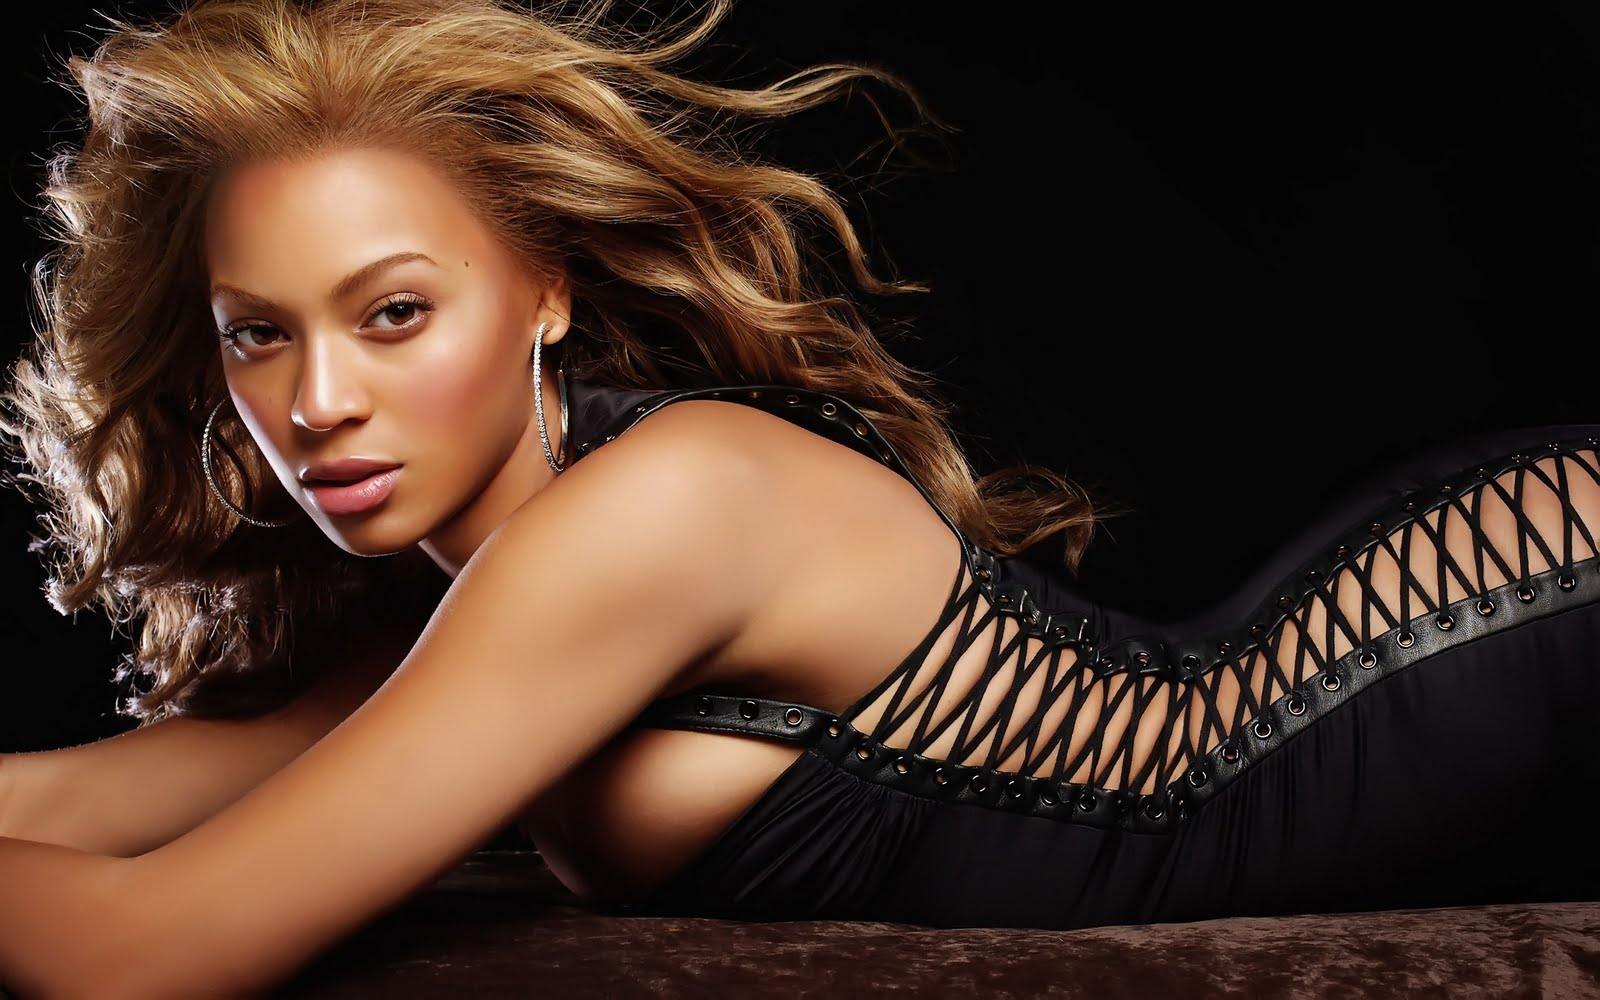 http://2.bp.blogspot.com/-SOnTVUkUXjw/TqLkV3gO-UI/AAAAAAAABnM/w4X3ZdB65B0/s1600/beyonce_knowles_41-wide-hd%2Bwallpapers-wallpape.in.jpg